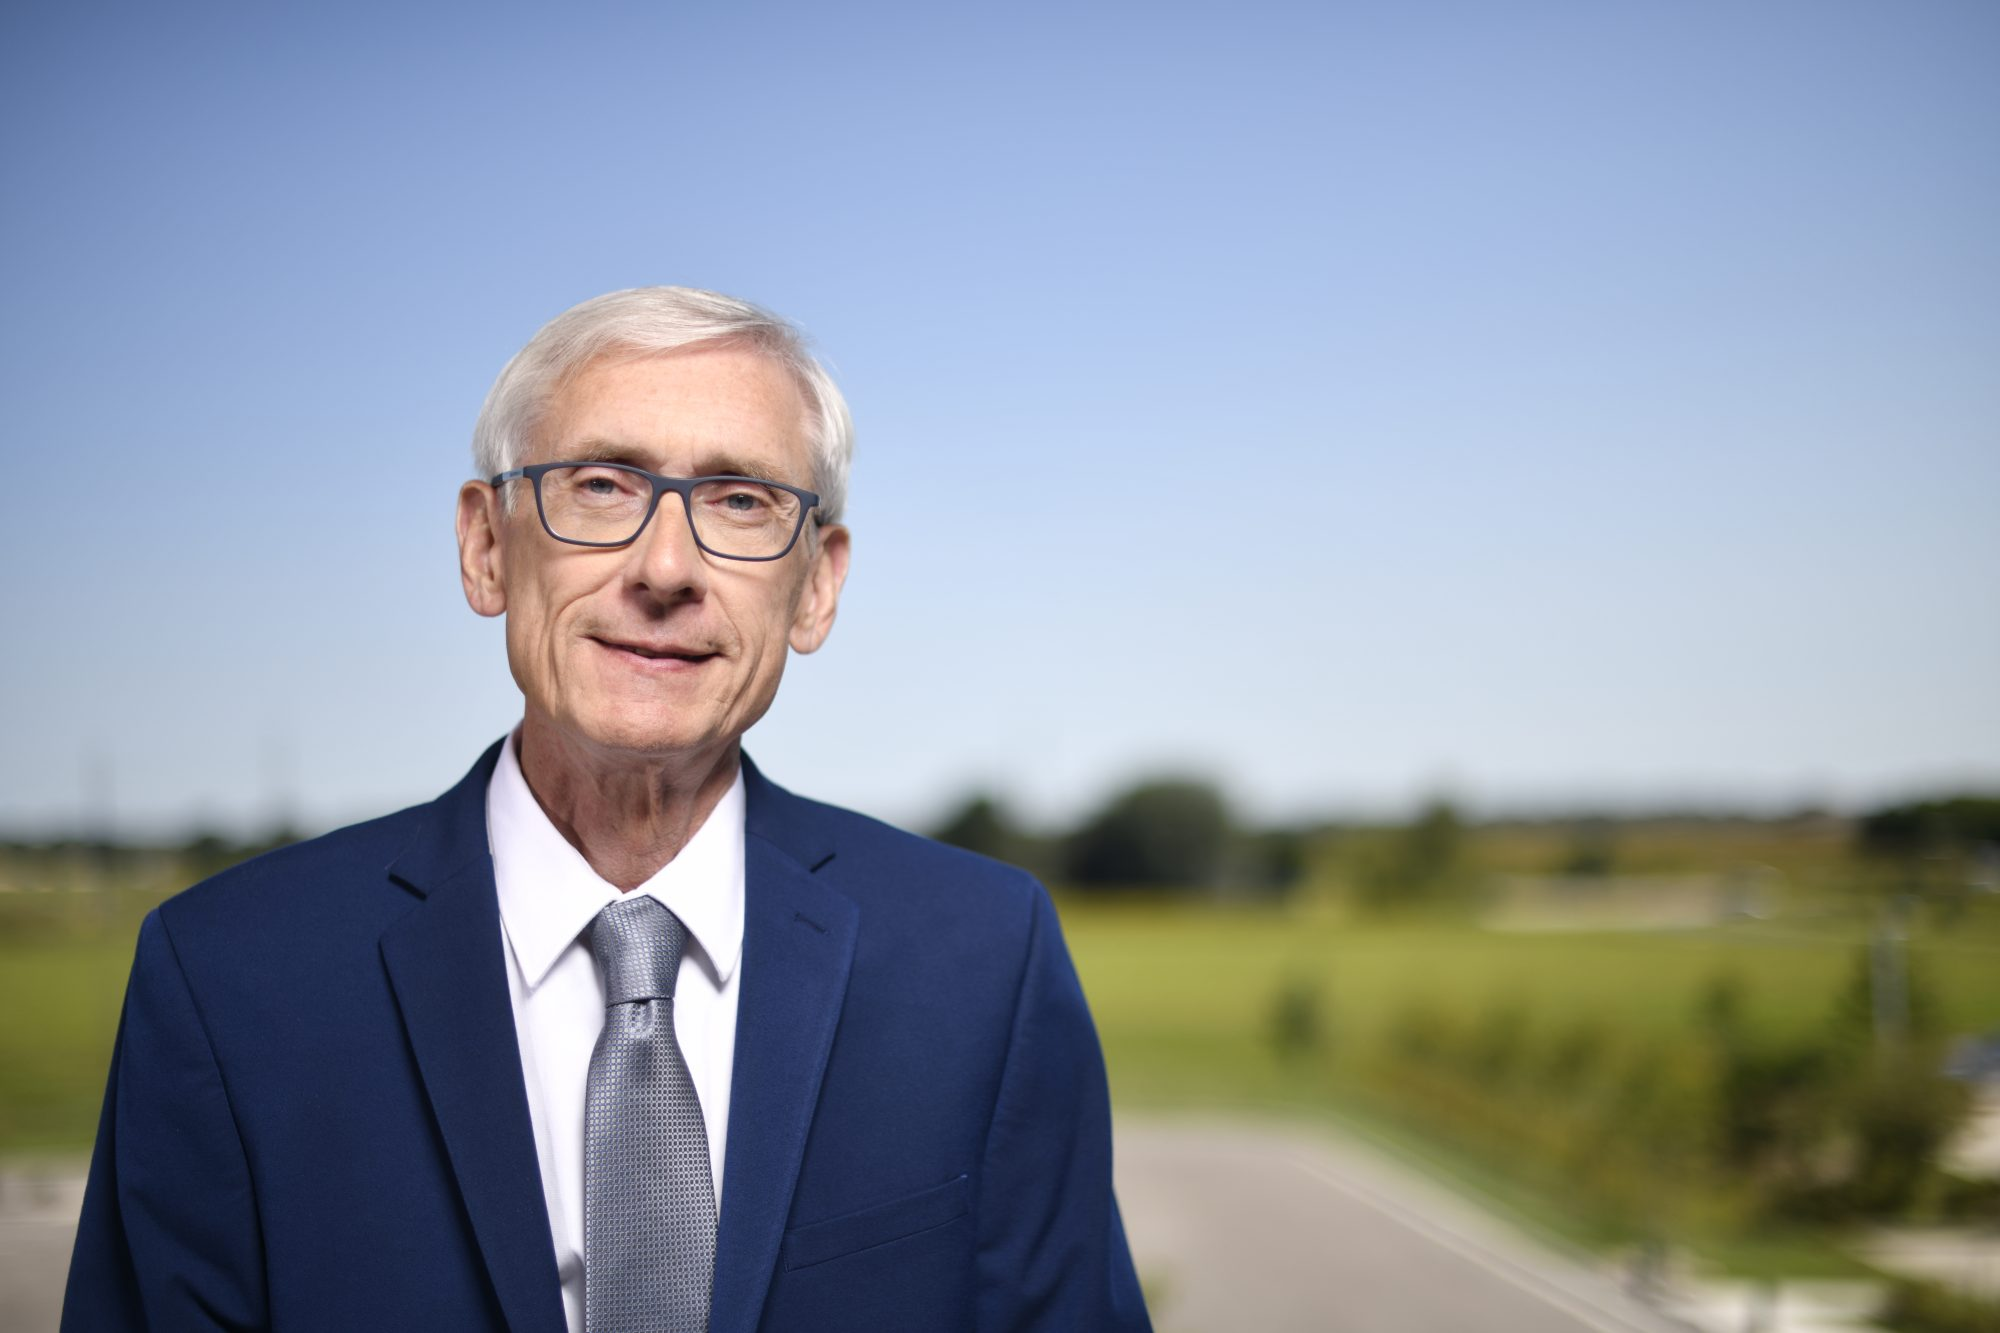 Gov. Evers Grants 18 Pardons, Brings Total Pardons Granted to 192